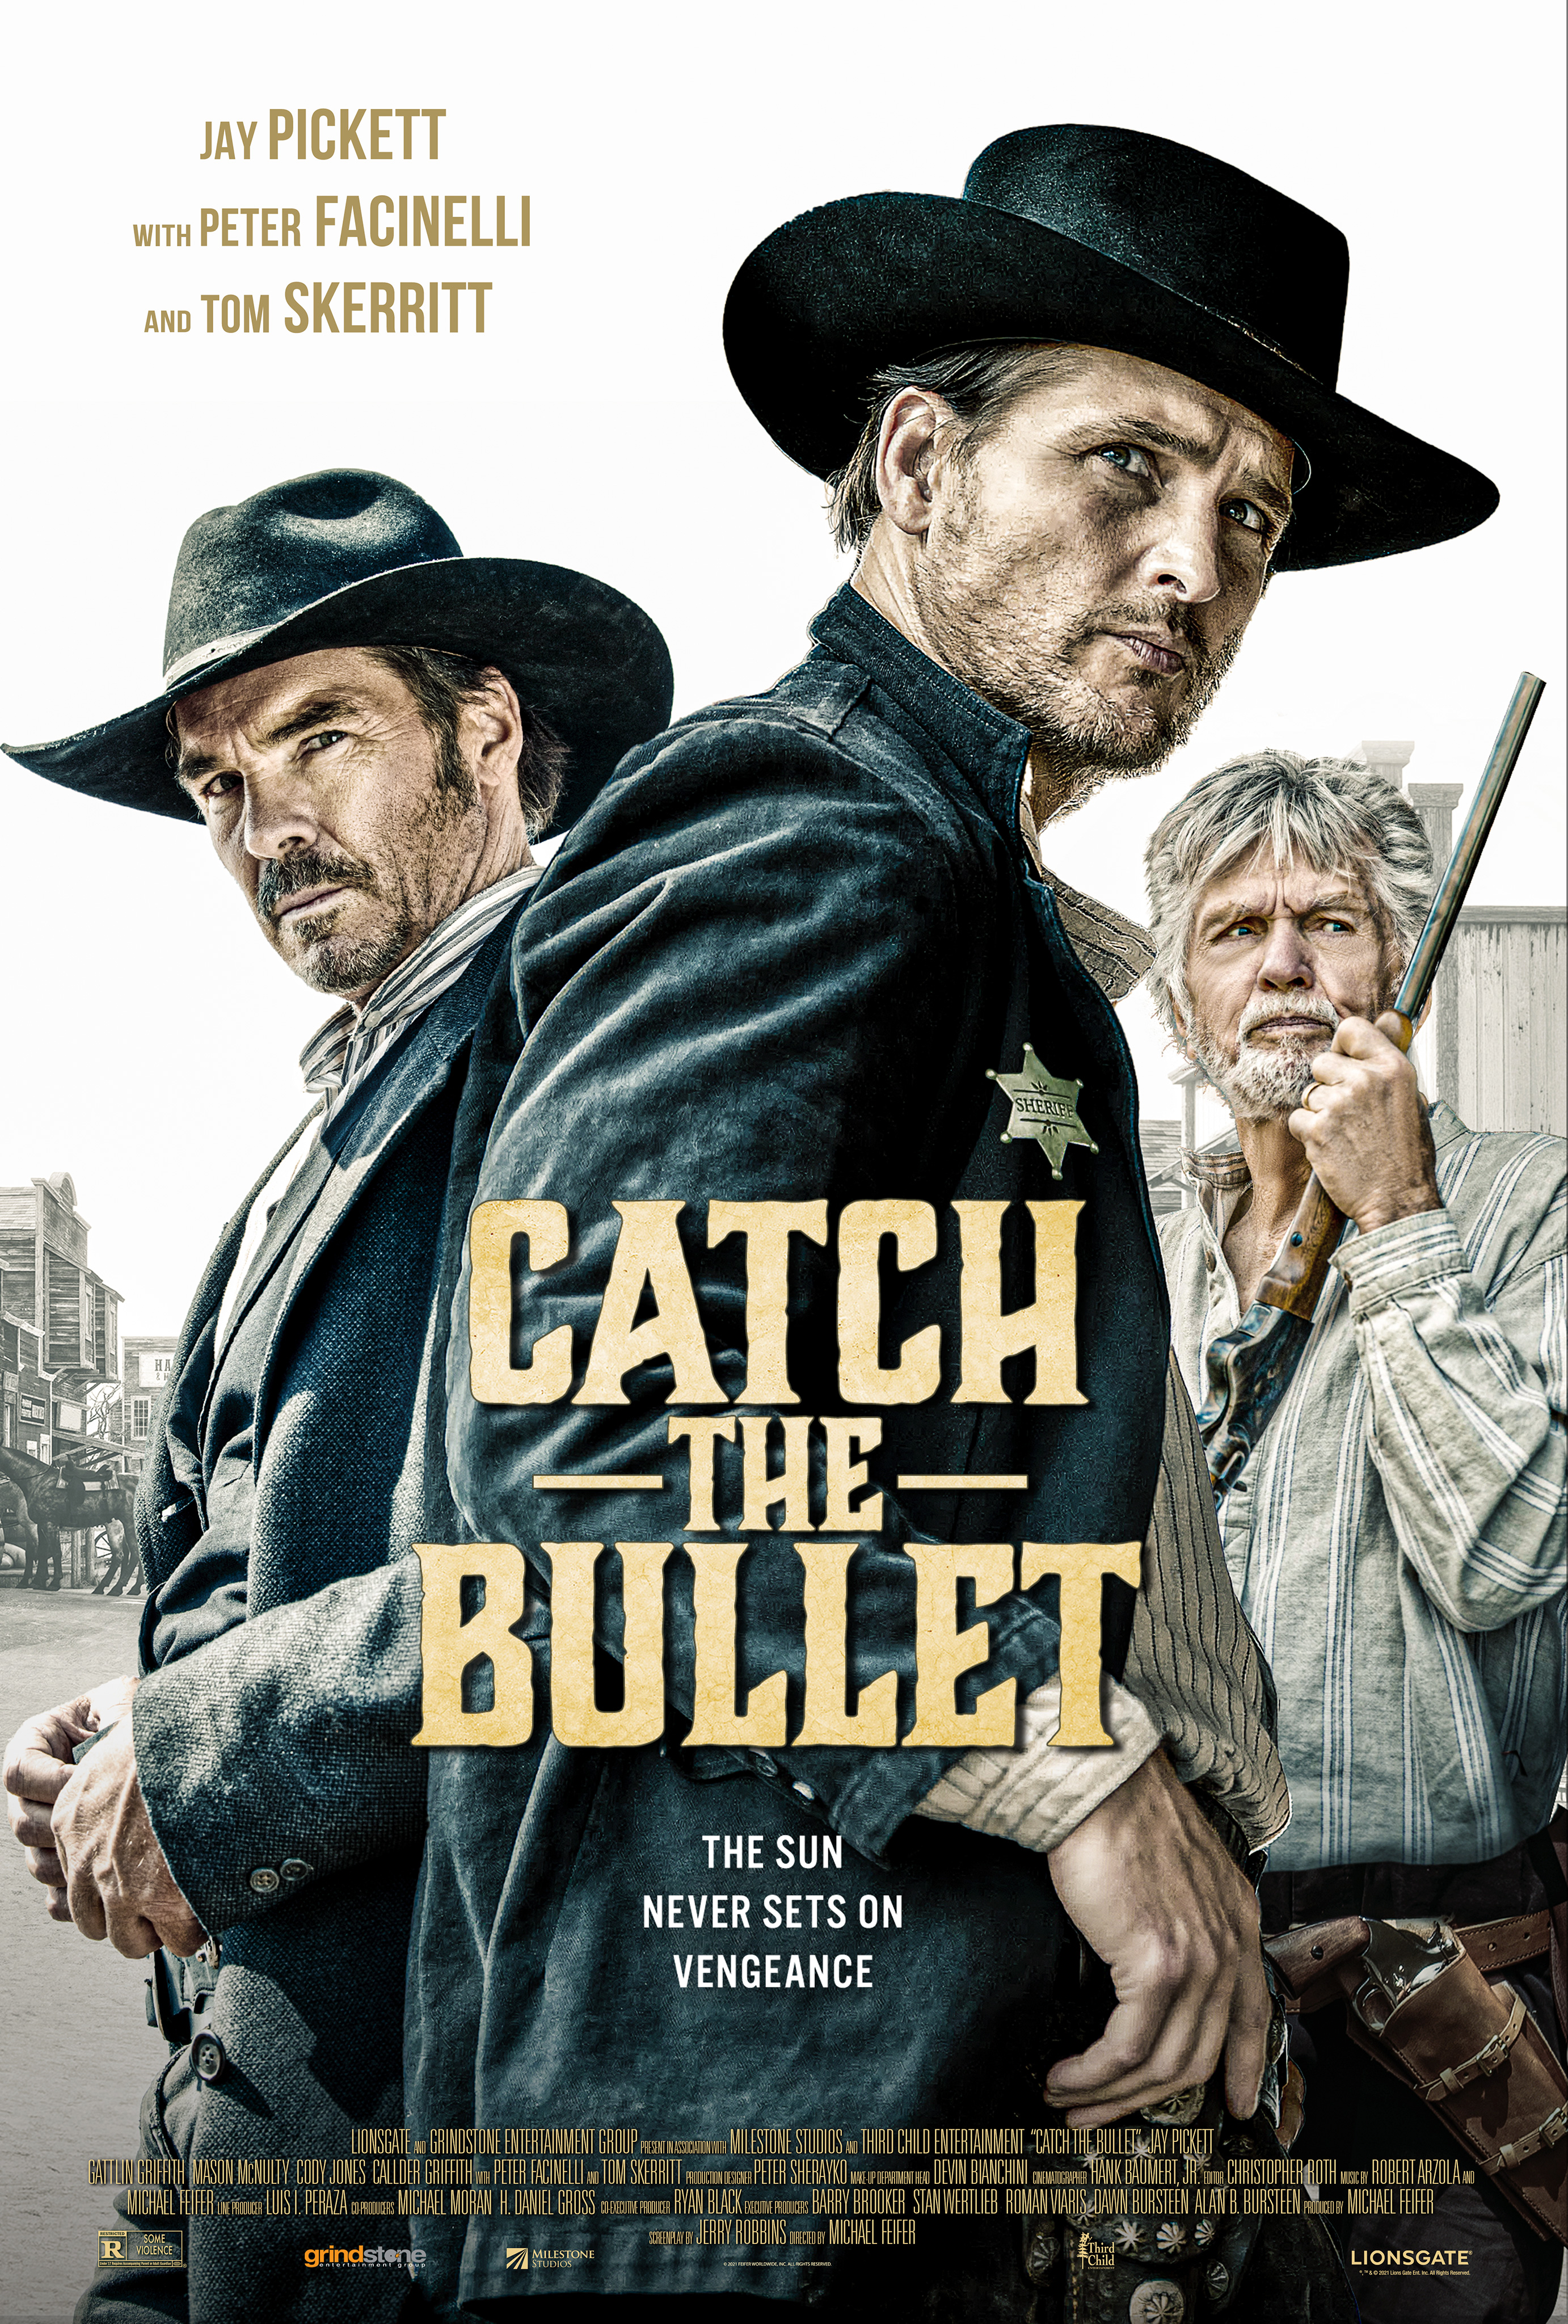 Download Catch the Bullet (2021) Bengali Dubbed (Voice Over) WEBRip 720p [Full Movie] 1XBET FREE on 1XCinema.com & KatMovieHD.sk